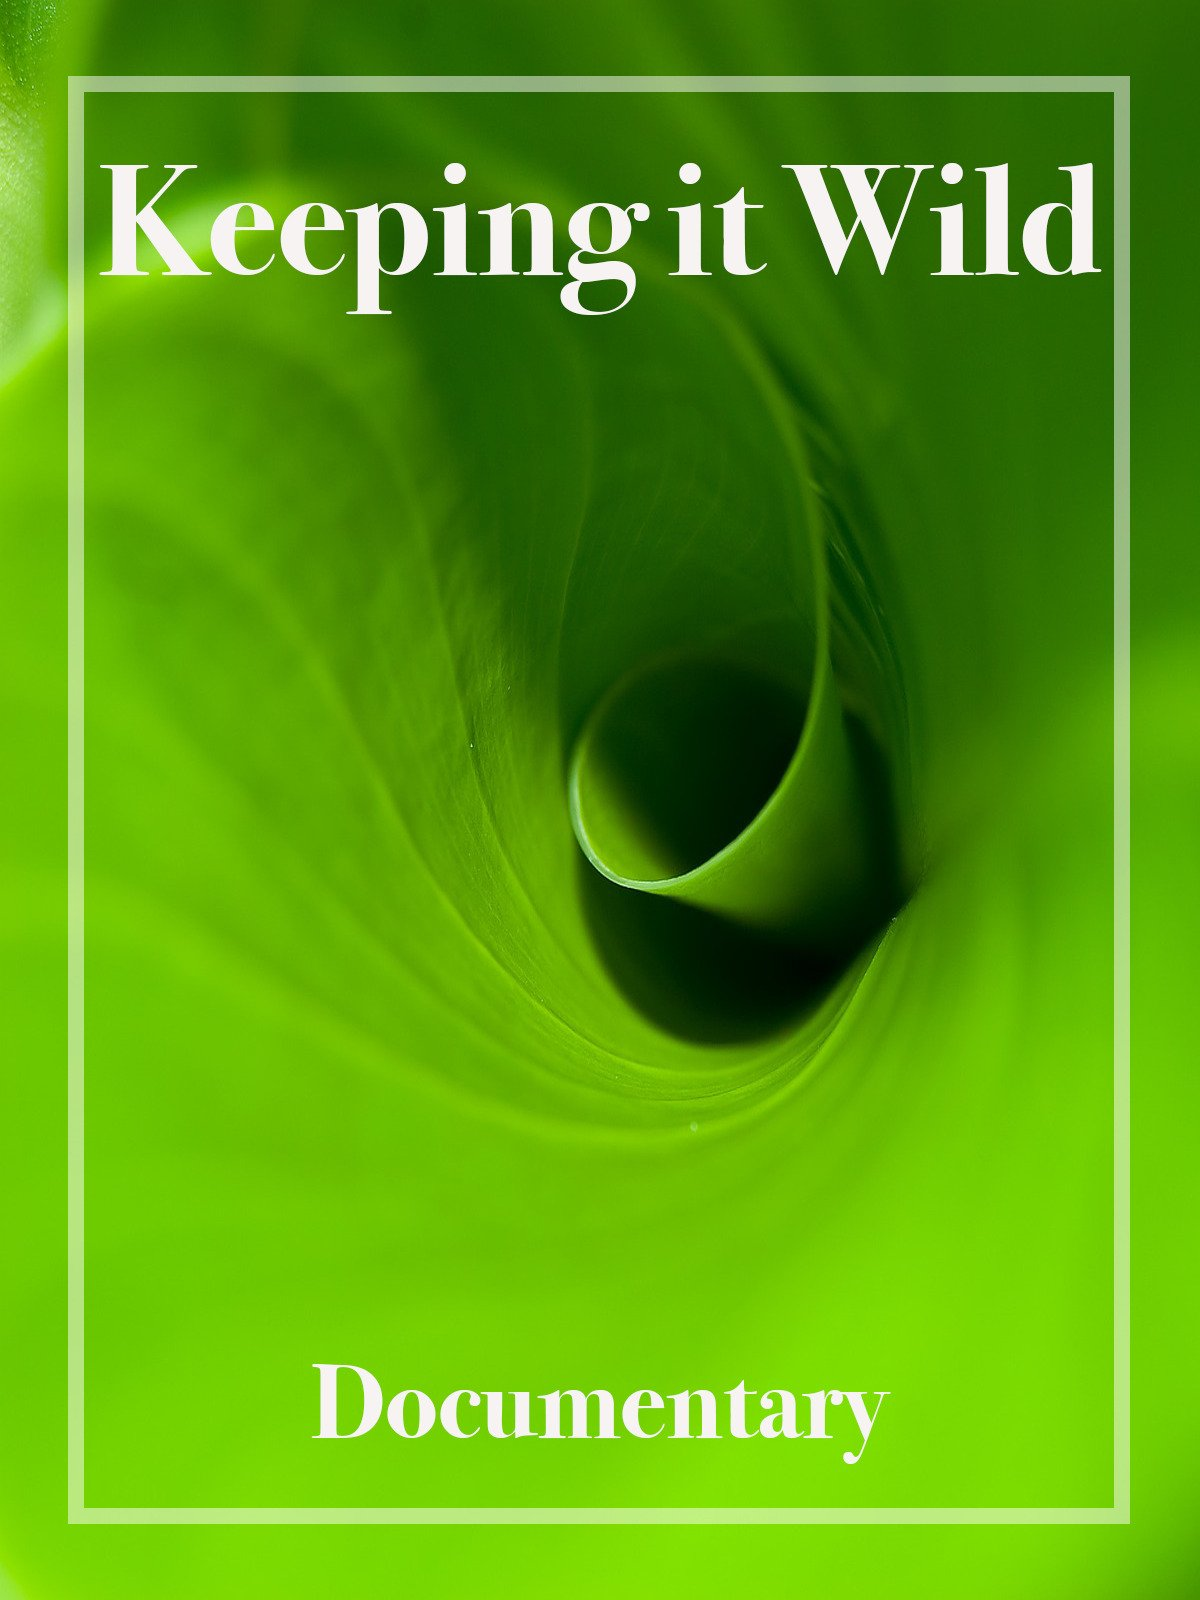 Keeping it Wild Documentary